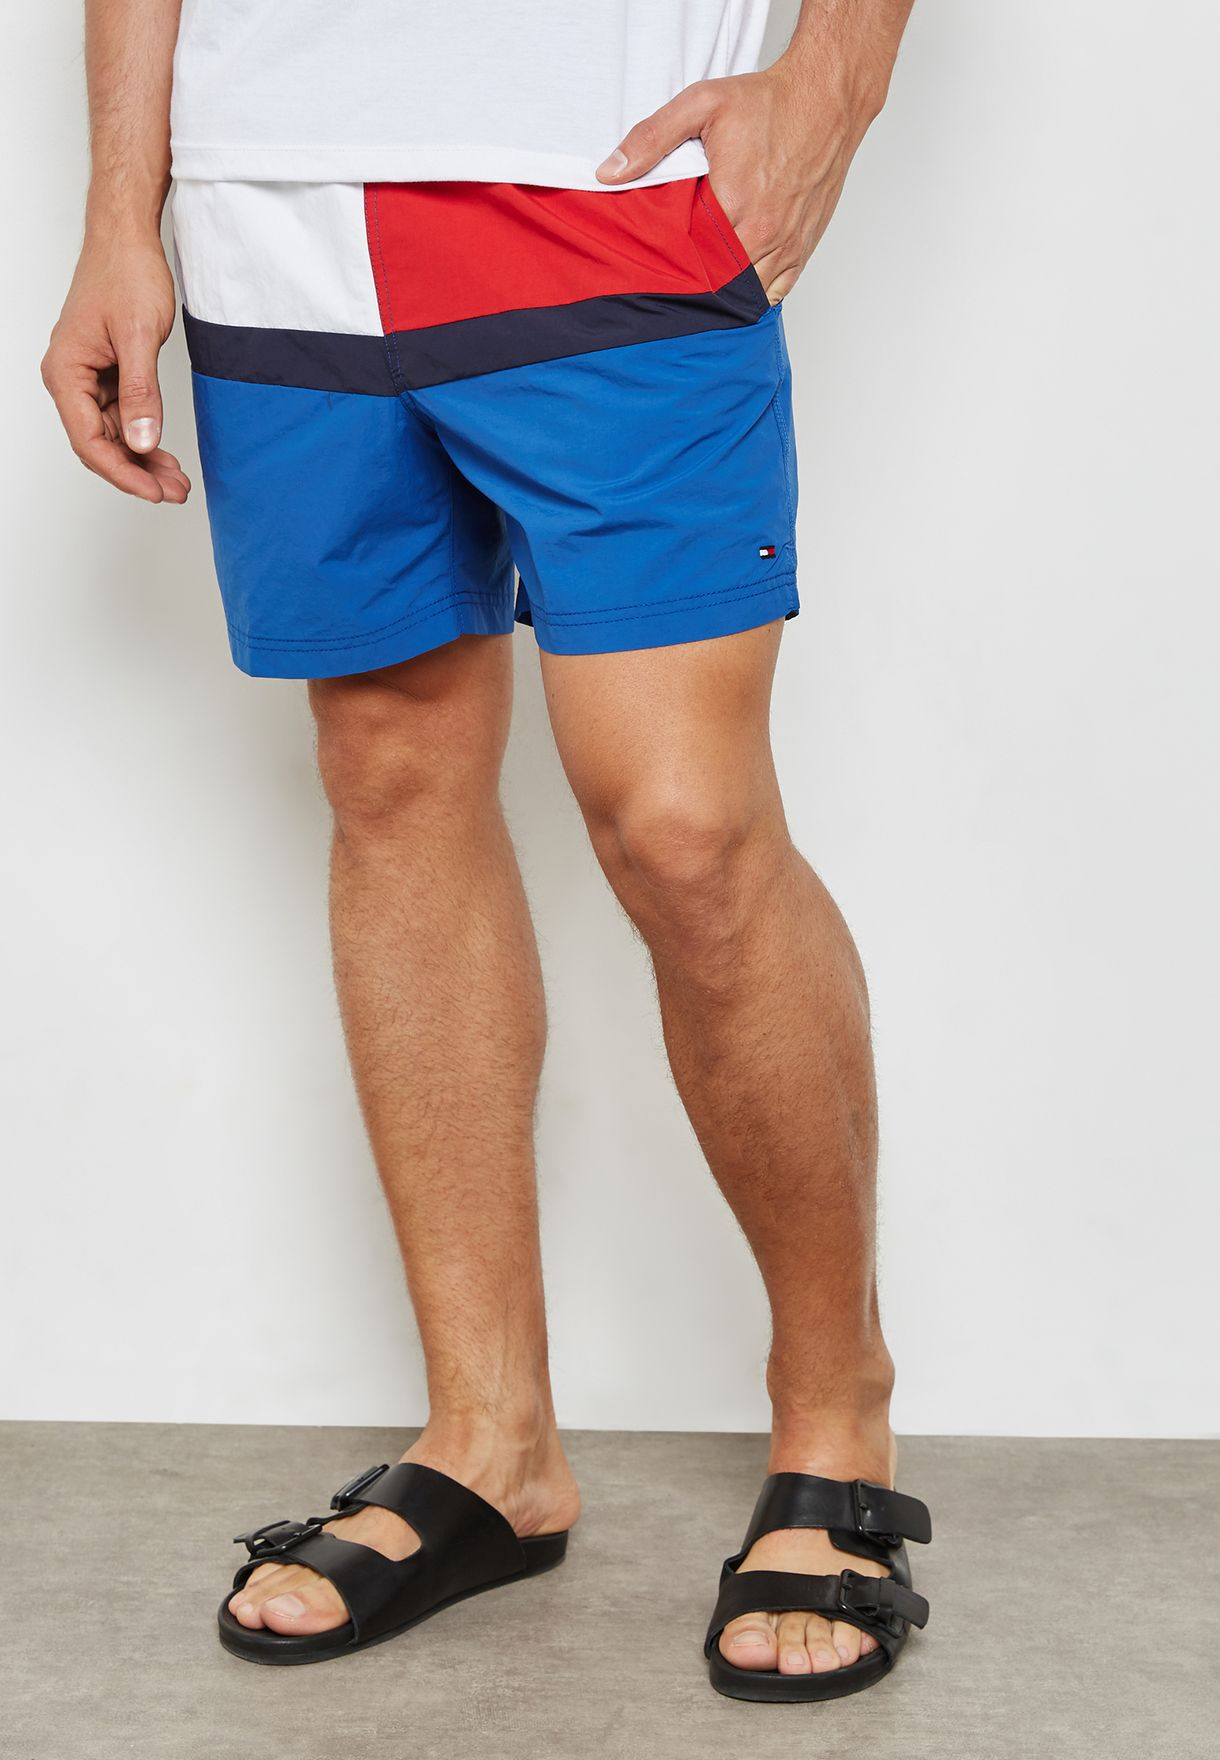 397428641fbe4 Shop Tommy Hilfiger blue Colorblock Drawstring Swim Shorts ...